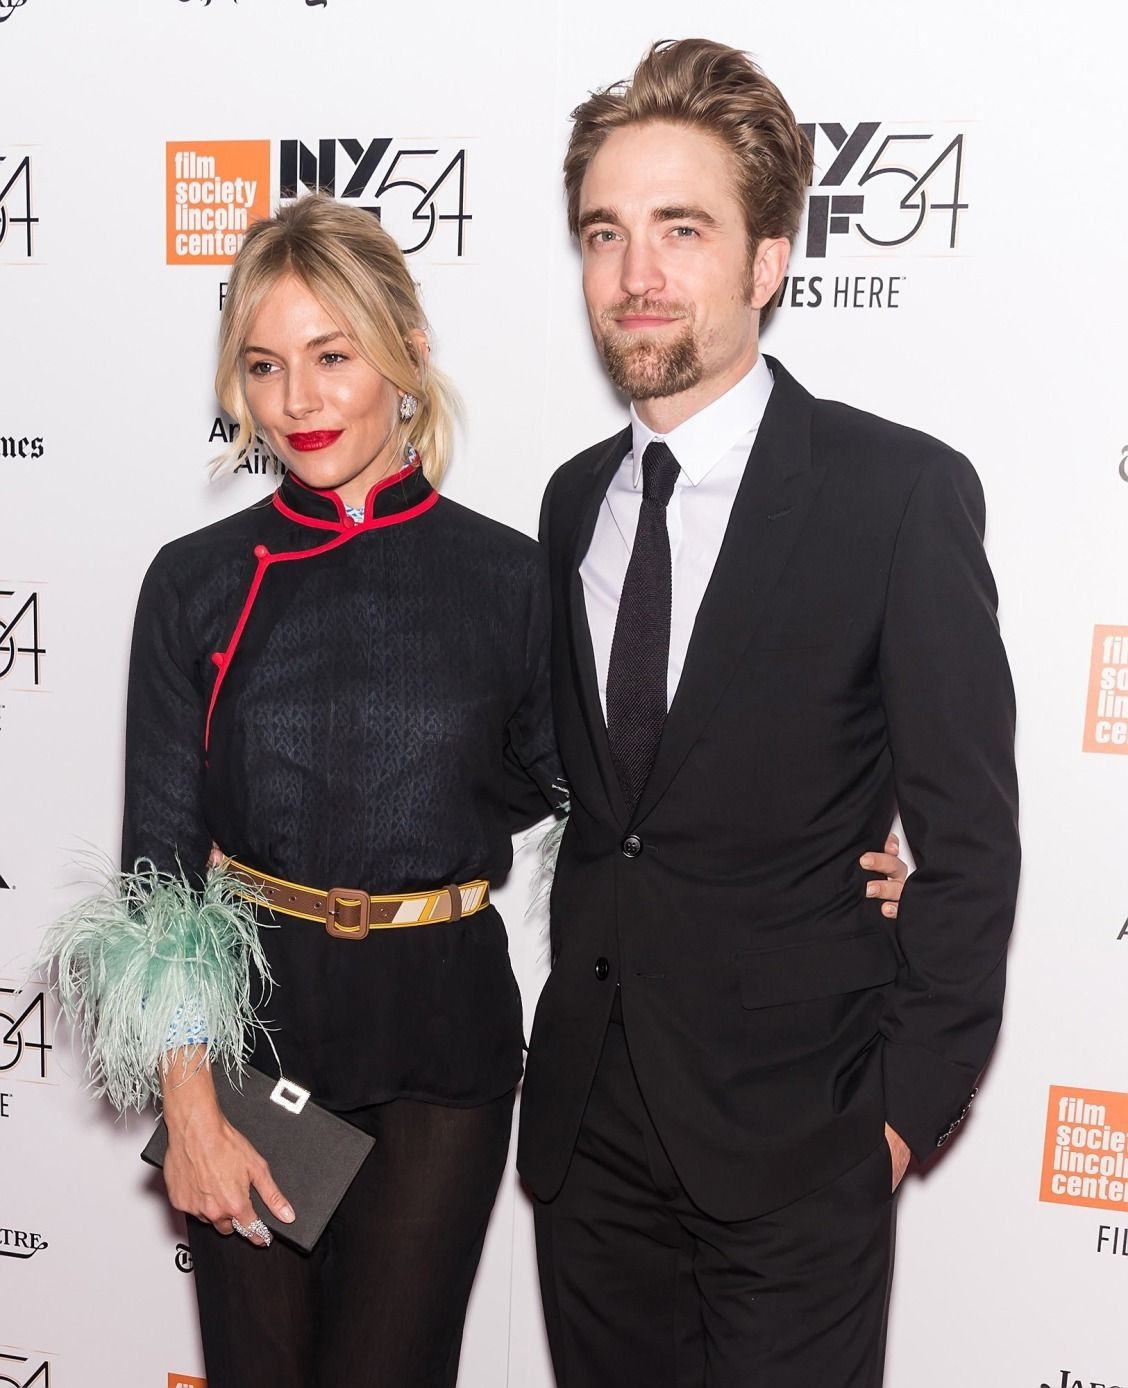 Sienna Miller and Robert Pattinson Close Out the New York